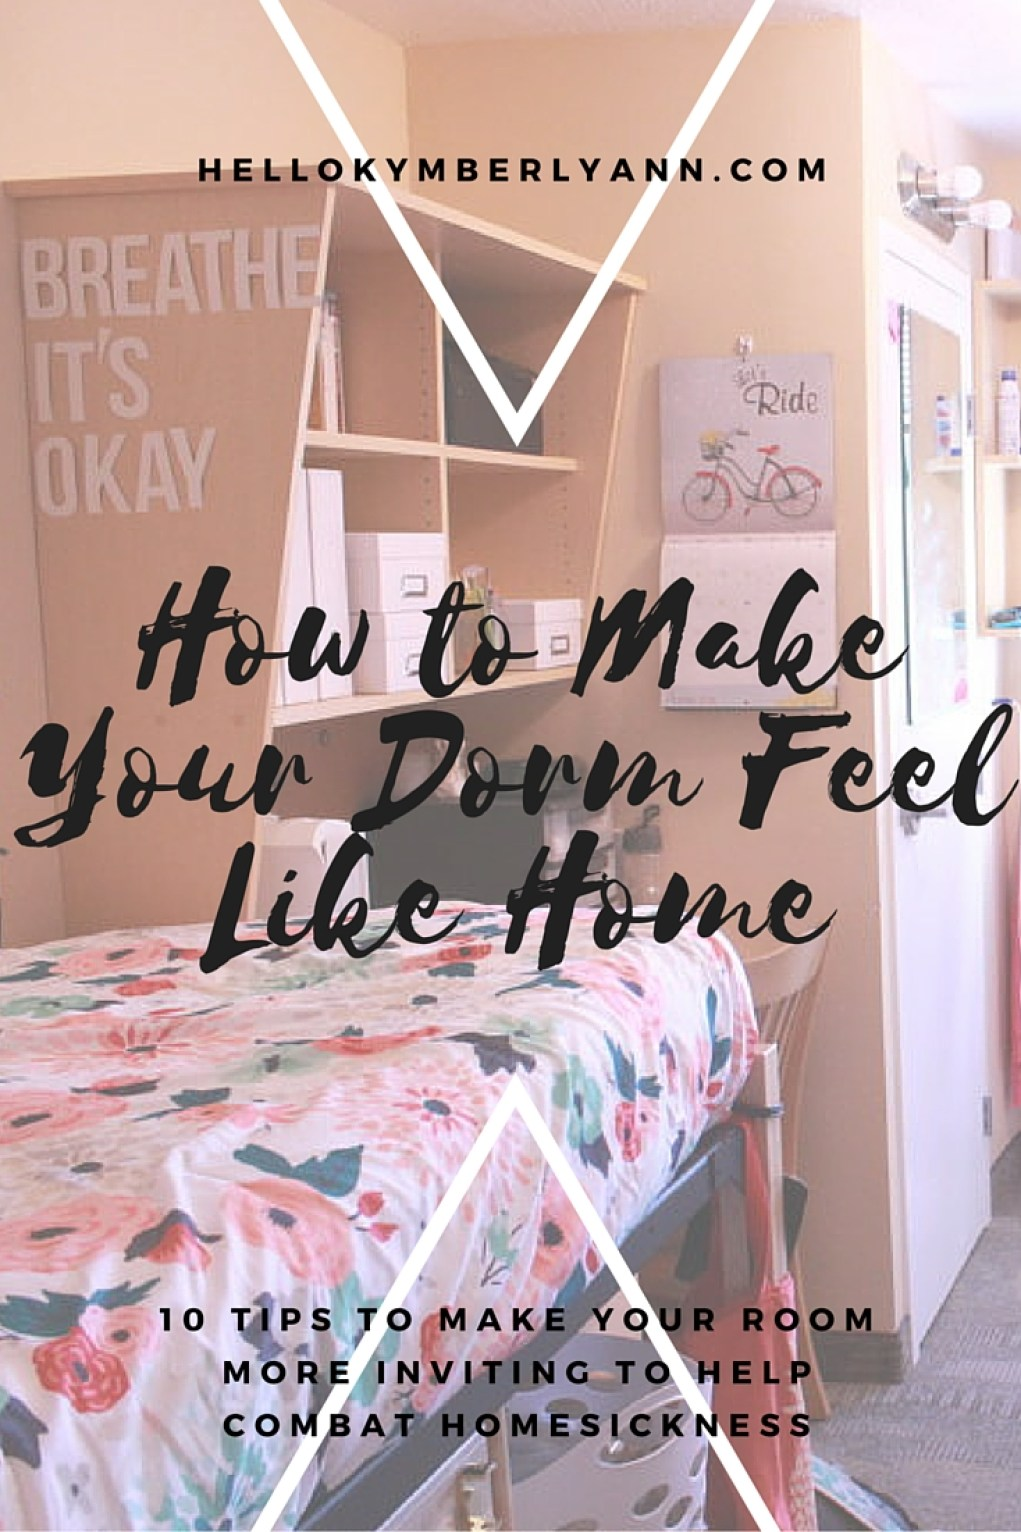 ake Your Dorm Feel Like Home: 10 tips to make your room more inviting and combat homesickness